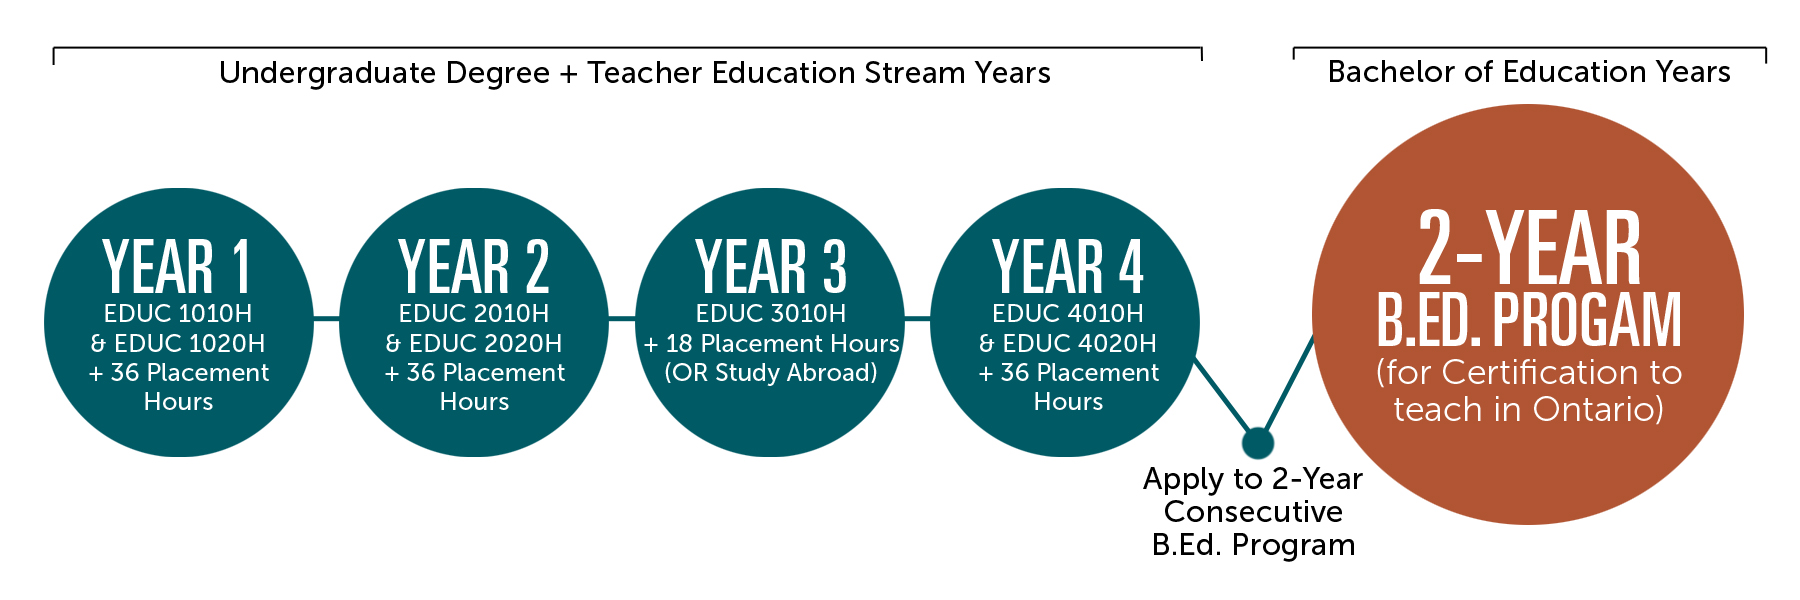 timeline graphic of 4 undergraduate plus teacher education stream years then apply to 2 year B Ed degree